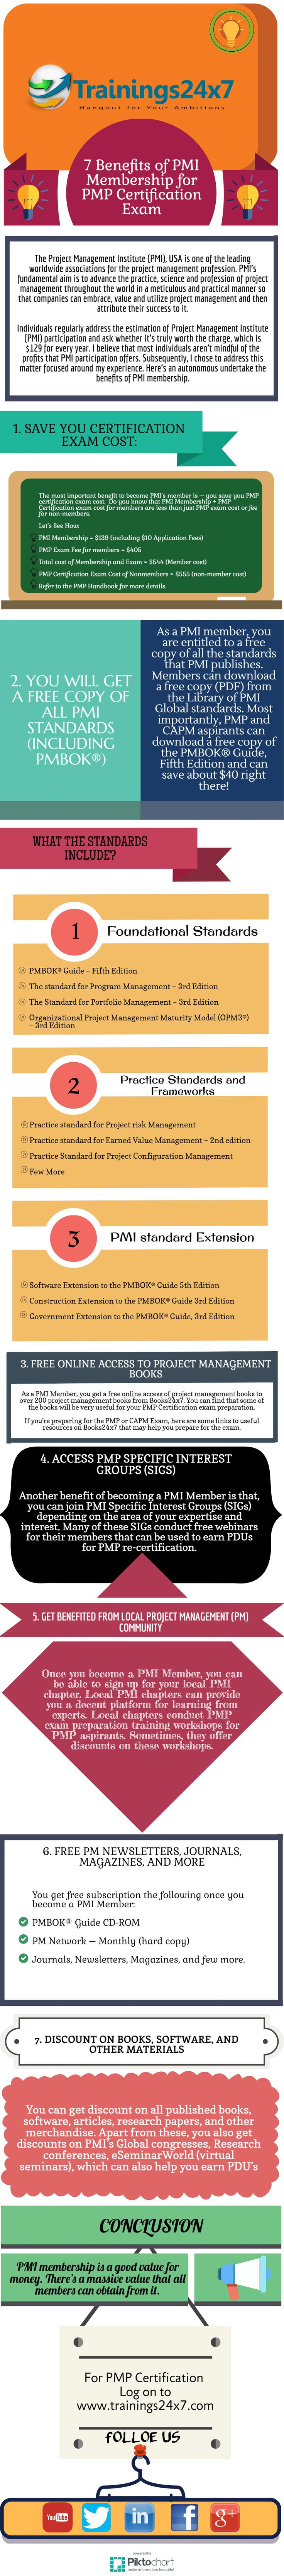 PMI is one of the largest non-profit organizations in the field of project management profession in the world. The goal of PMI is to conduct R&D for continuous development in the field of Project Management. PMI has representative in the form of 280 PMI chapters across the globe.